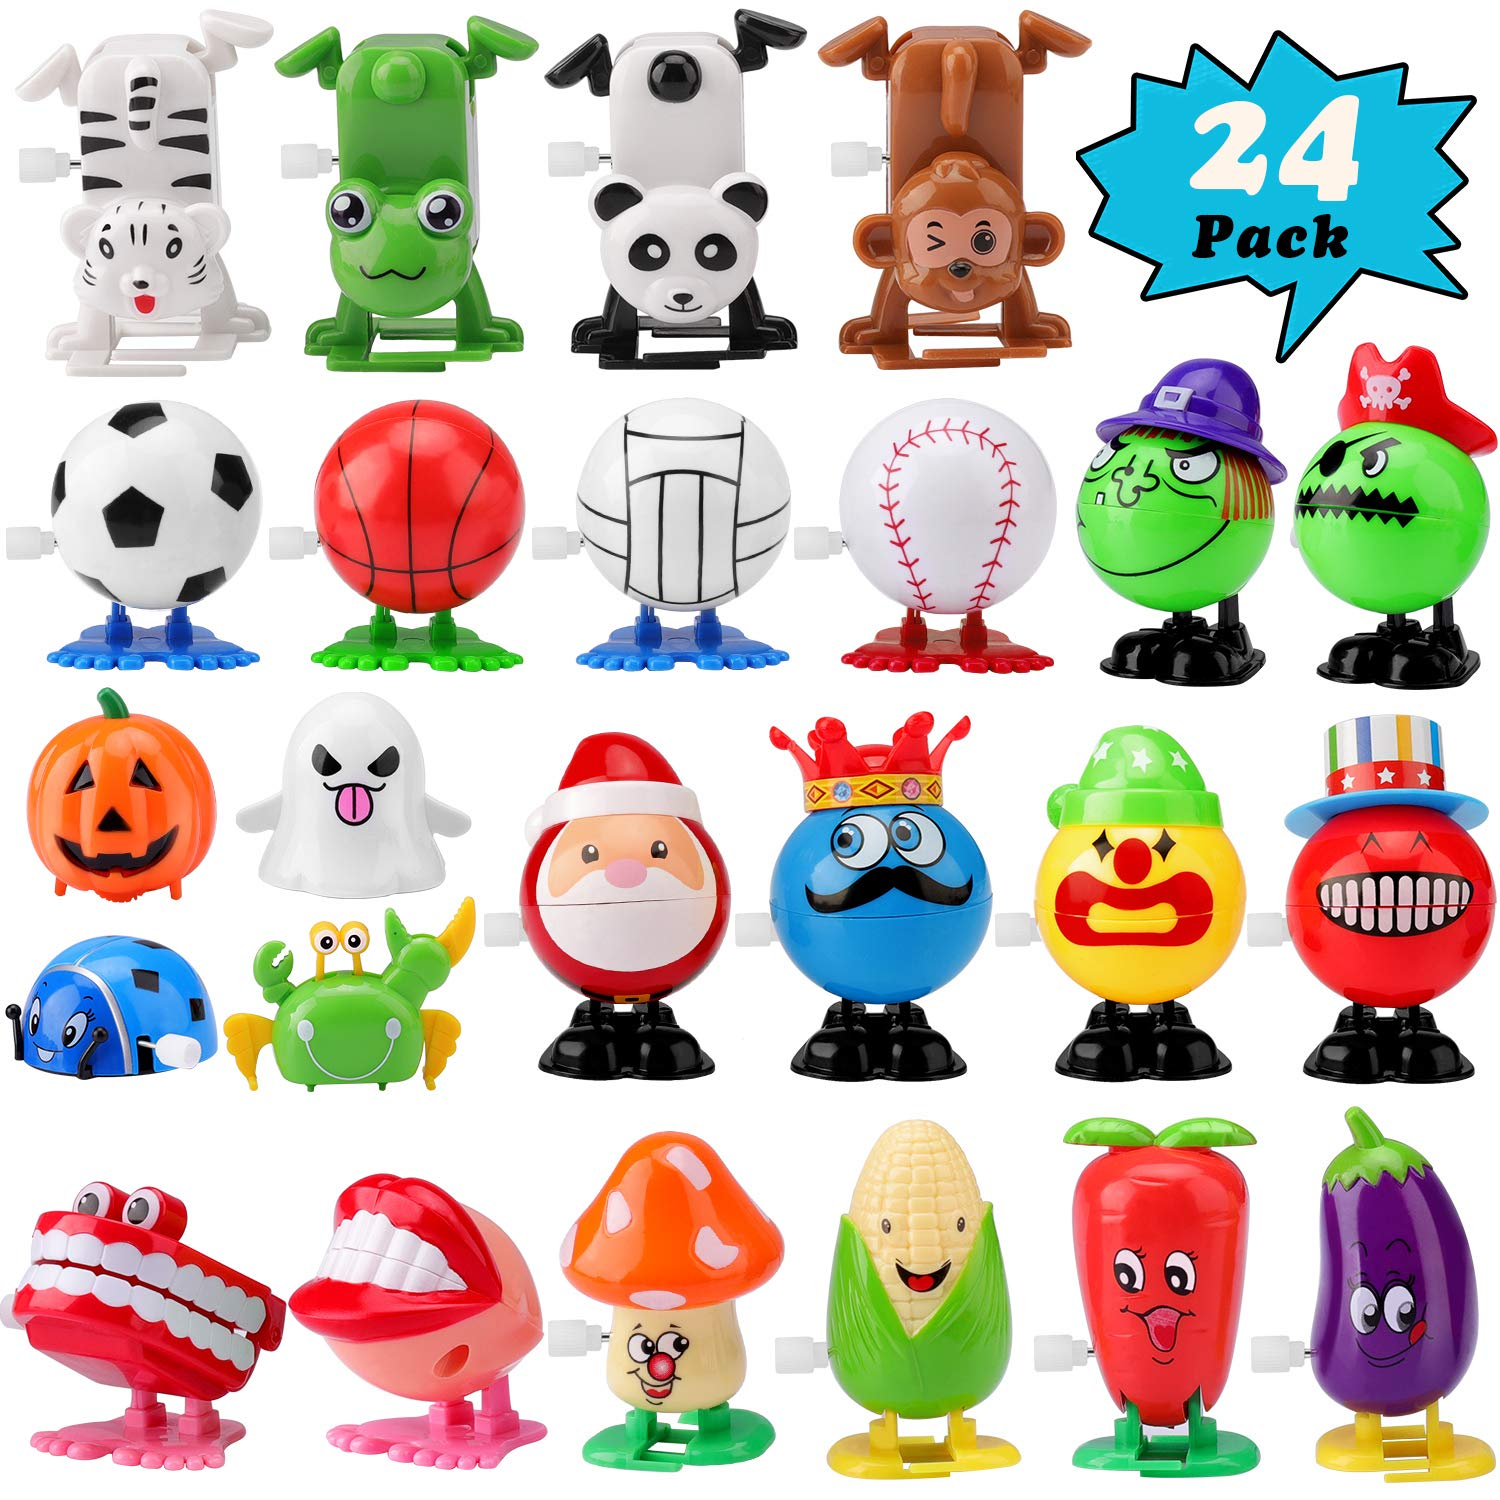 FittiDoll 24 Pack Wind Up Toys Assorted Wind-up Toys for Kids by FittiDoll